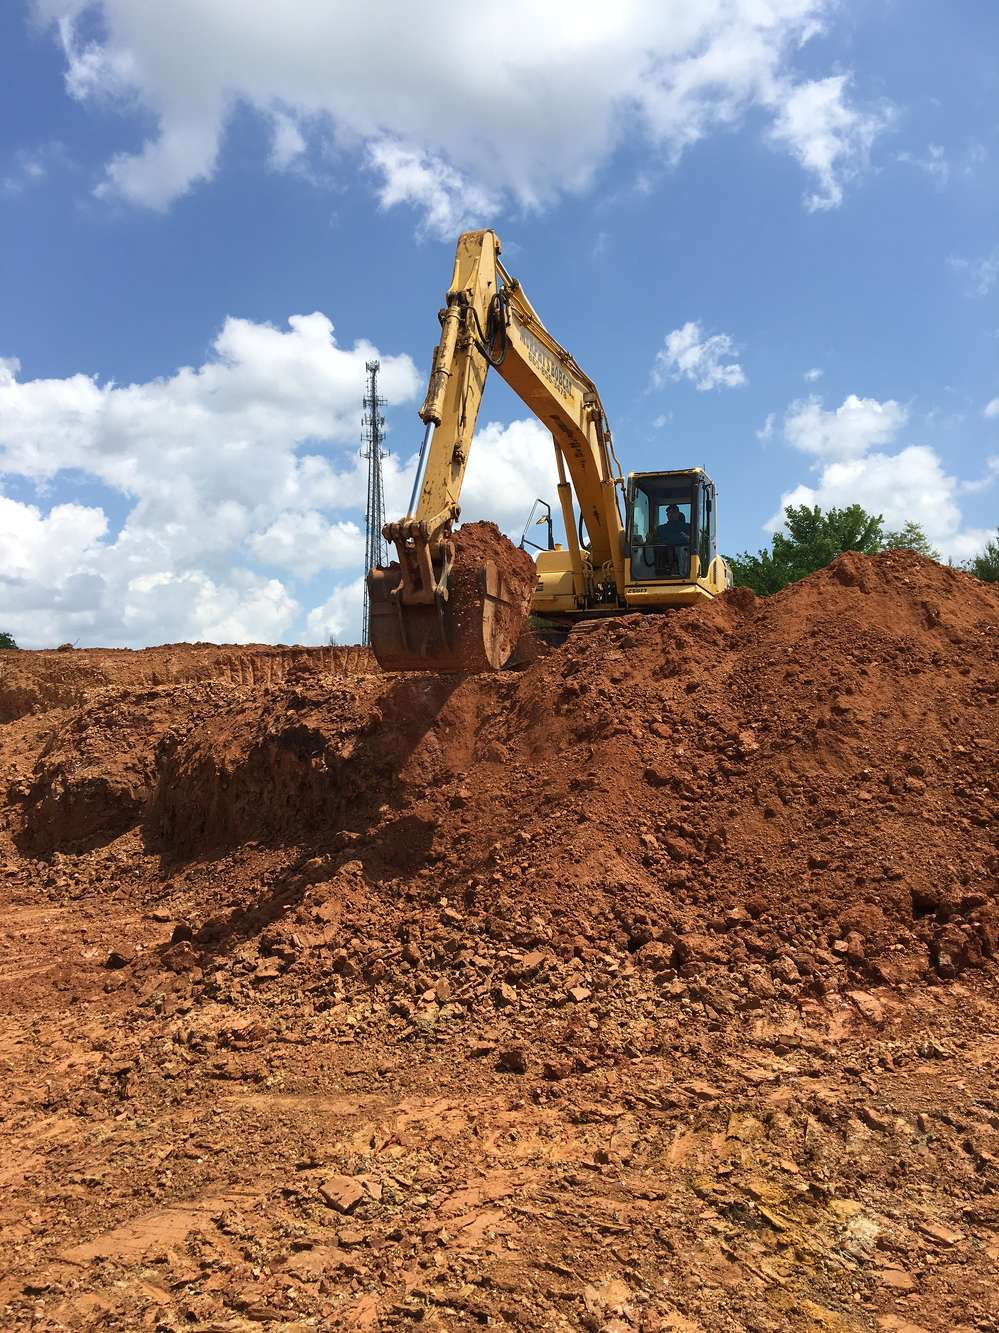 From his operation in Maryville, just south of Knoxville, Murphy does a lot of ground clearing and carving through land for new roads. Much of that is done for new-home developers.